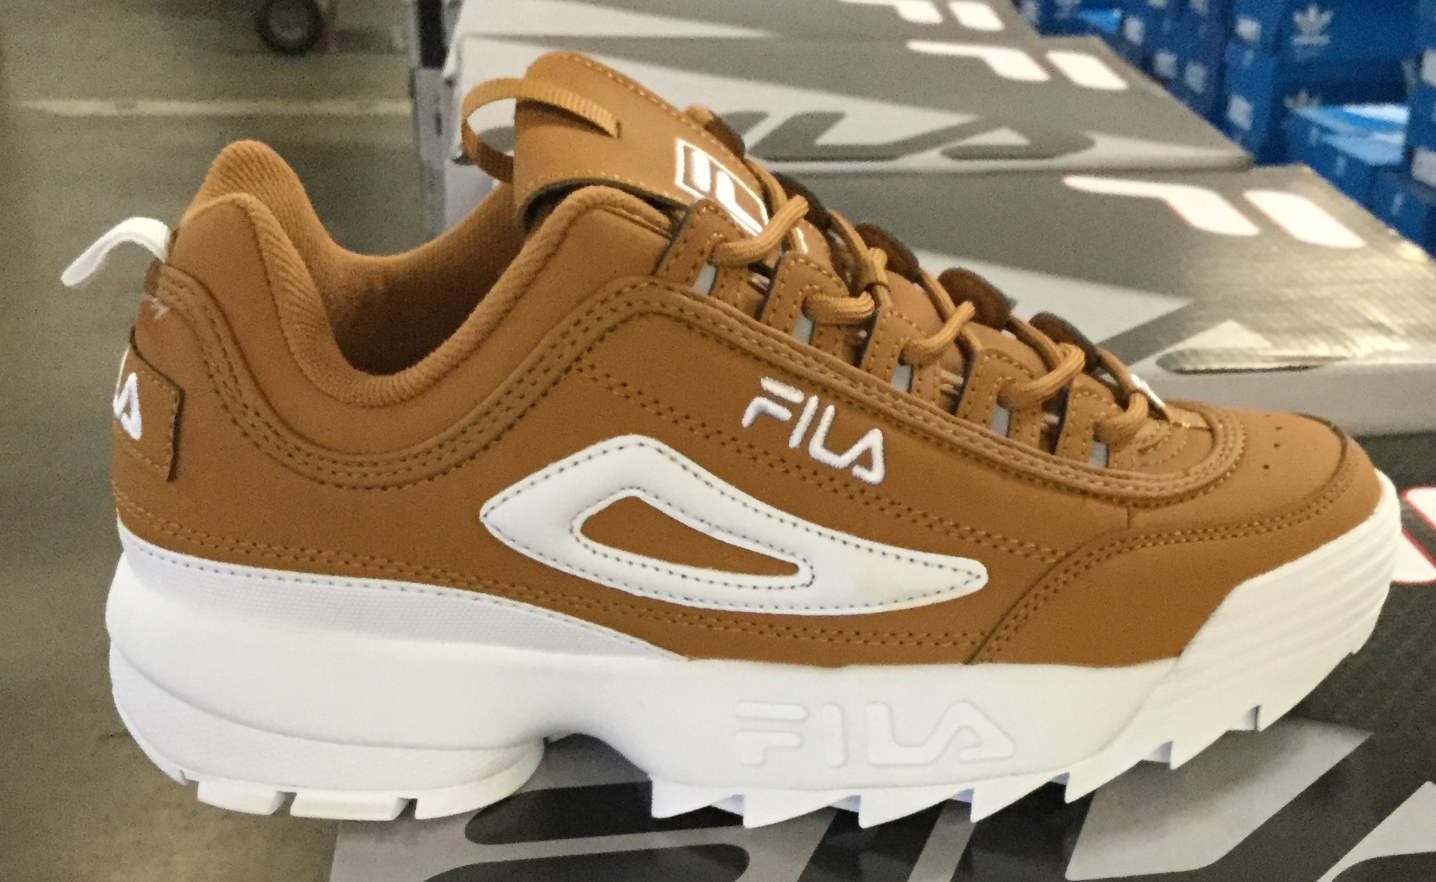 19e663893c67 FILA DISRUPTOR II Men s Casual Tracking Shoes Wheat(Tan) 1XM00001-222 Fast  Ship